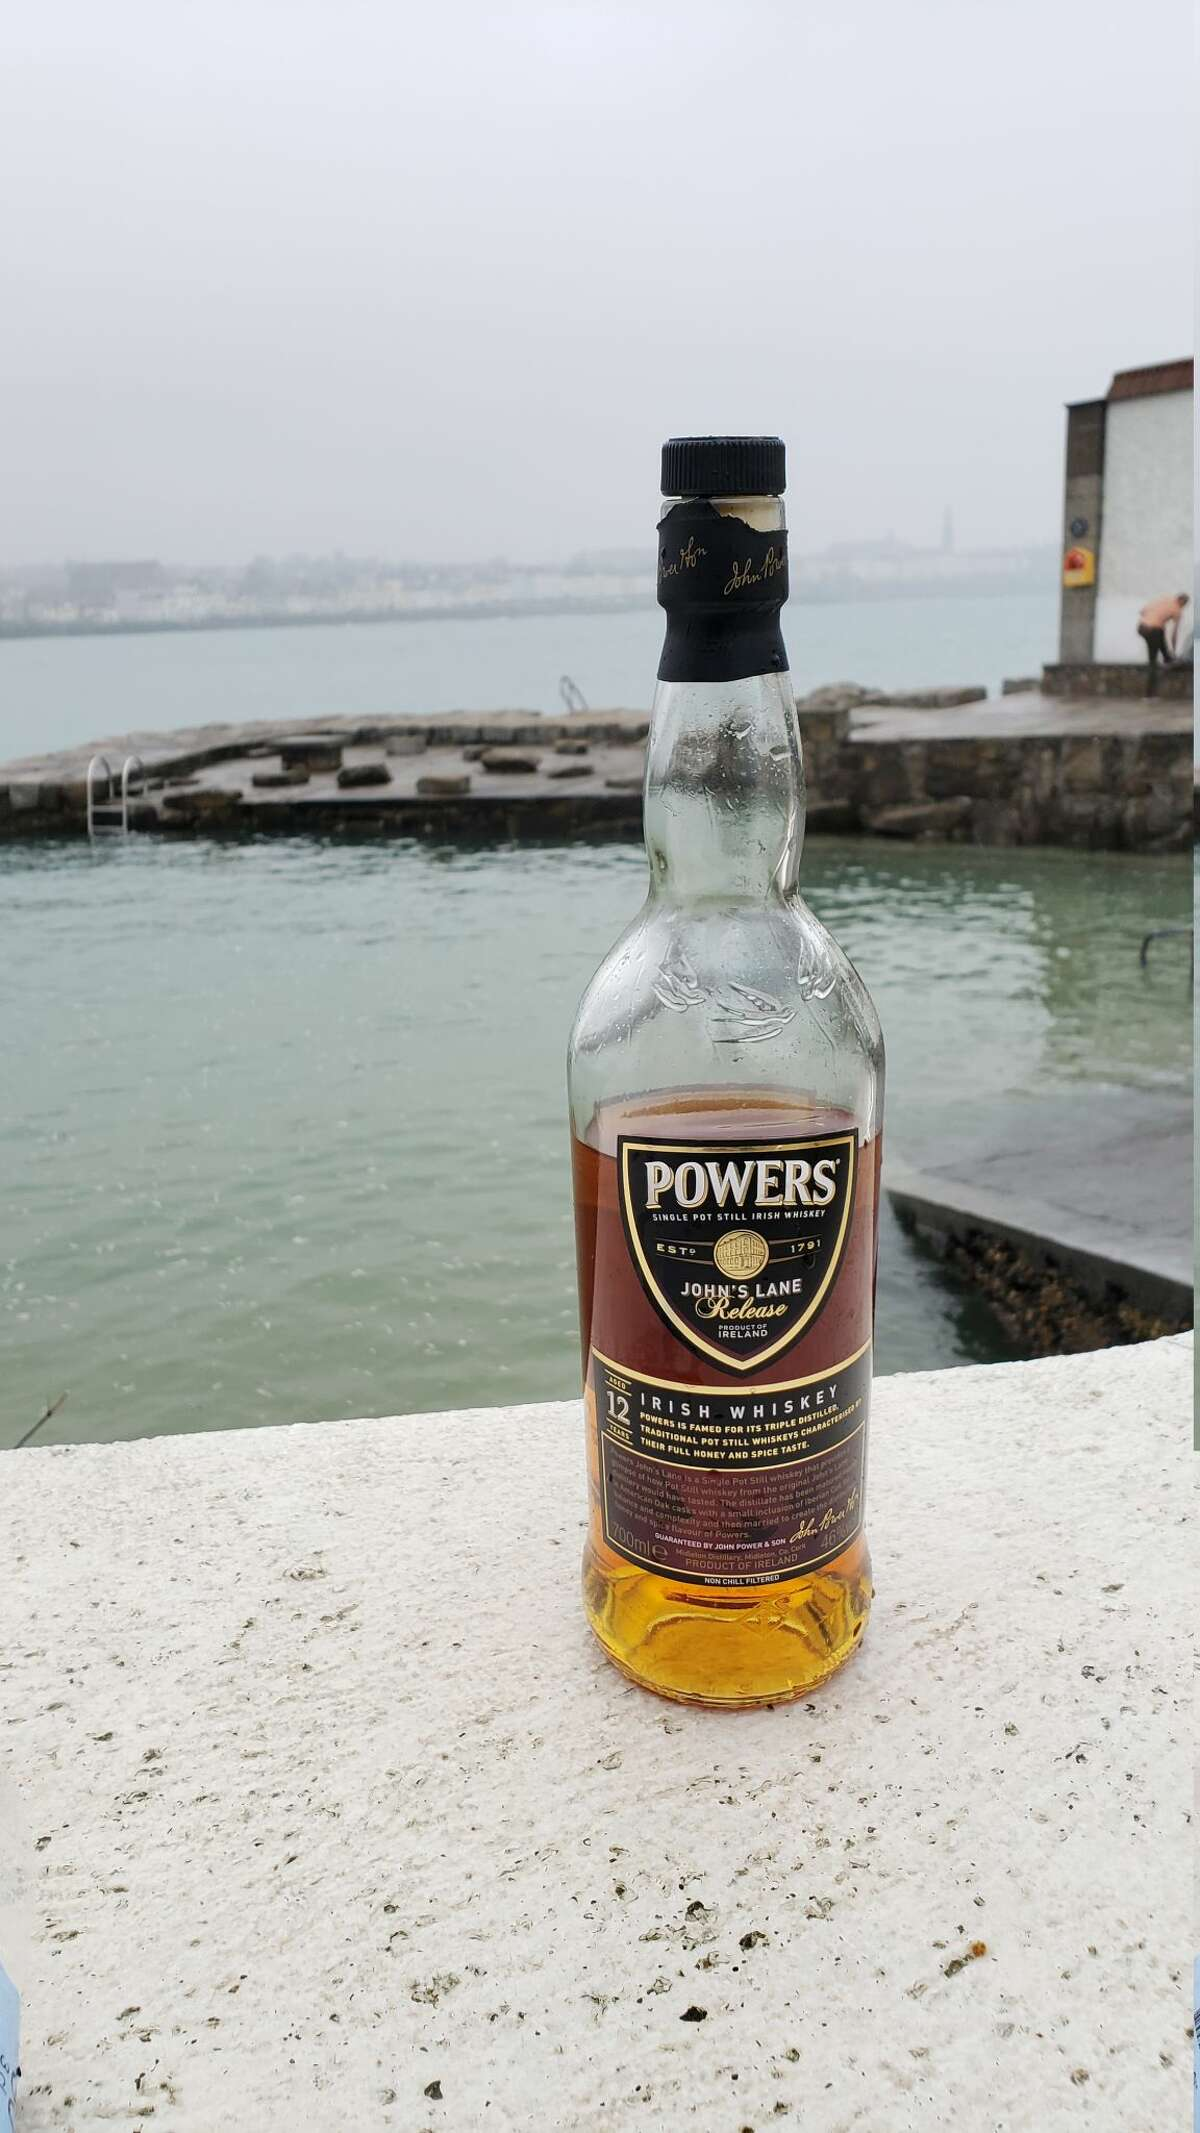 Powers John's Lane whiskey is enjoyed before and after a brisk morning dip in Dublin Bay. Consider keeping a bathing suit handy while traveling through Ireland, as taking a frigid dip in briny Irish waters is popular among locals at all times of year. Offering a nip of whiskey to strangers you encounter is a fast way to make new friends and get inside knowledge on the best places to dine and drink at or visit.